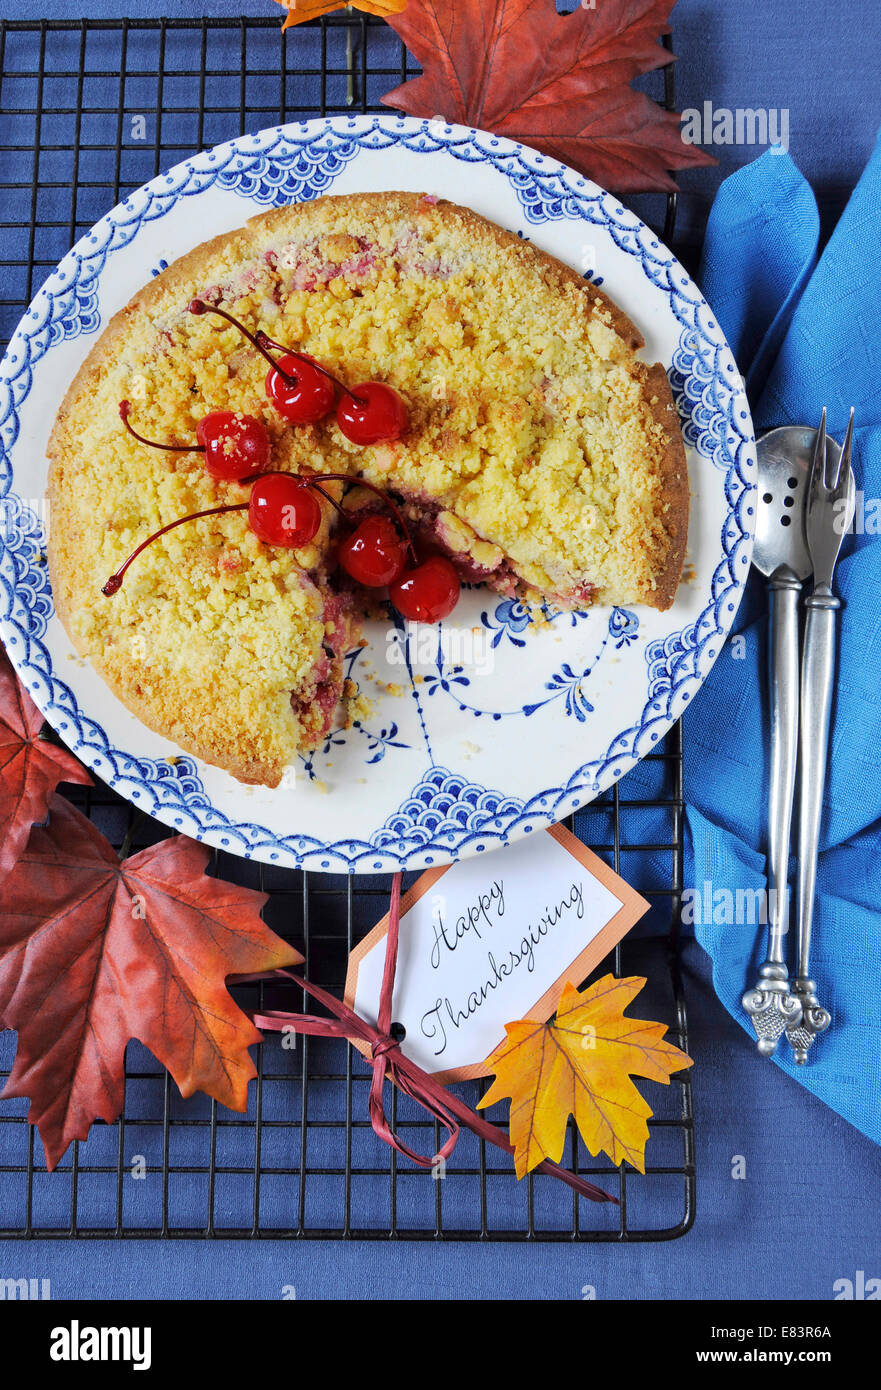 Happy Thanksgiving table setting with cherry apple crumble pie on a vintage blue plate with autumn leaves on blue tablecloth. & Happy Thanksgiving table setting with cherry apple crumble pie on a ...